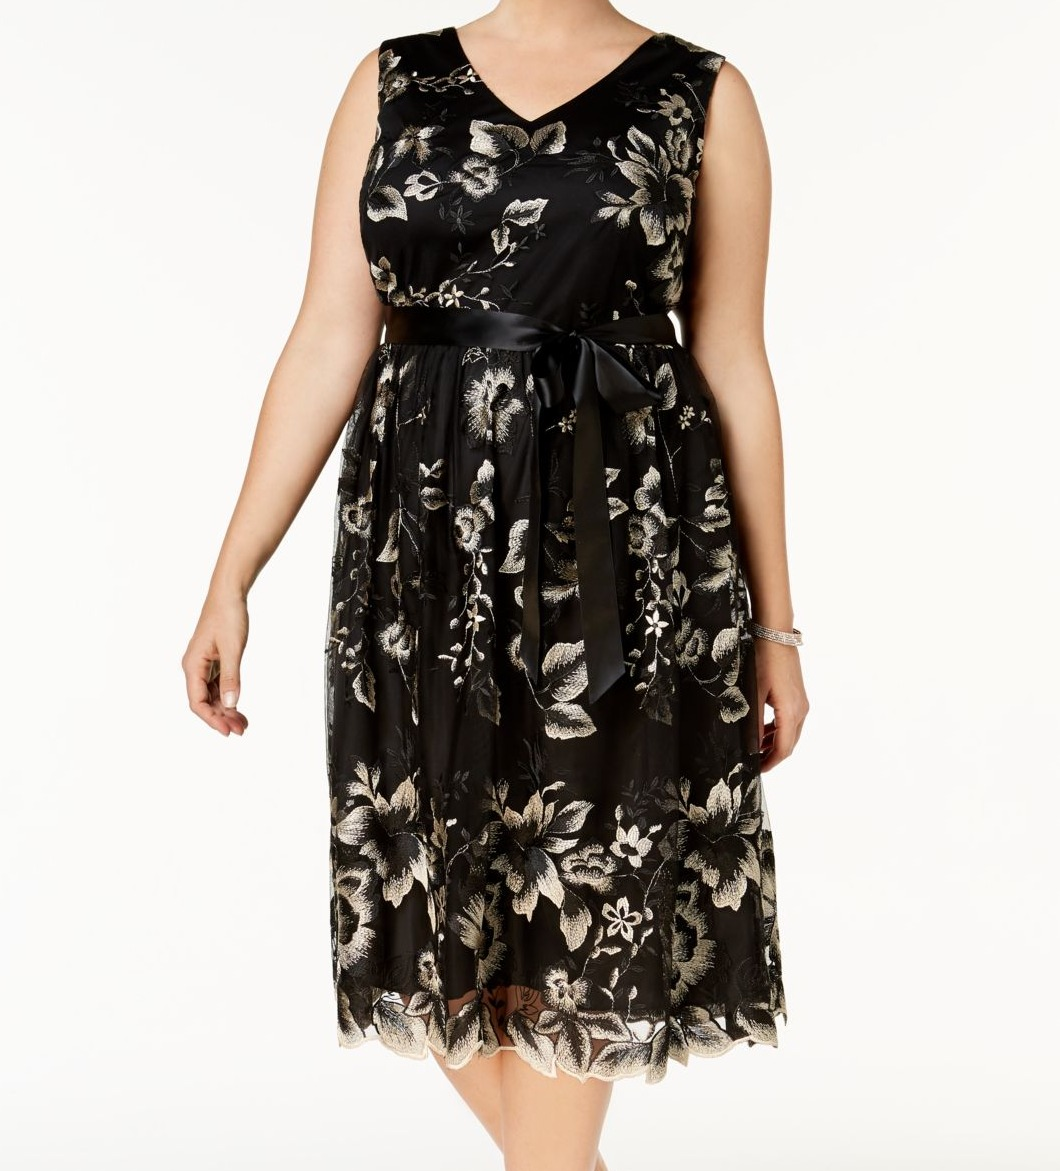 0c6730058e Details about SLNY NEW Black Womens Size 16W Plus Embroidered Floral Sheath  Dress  109- 102